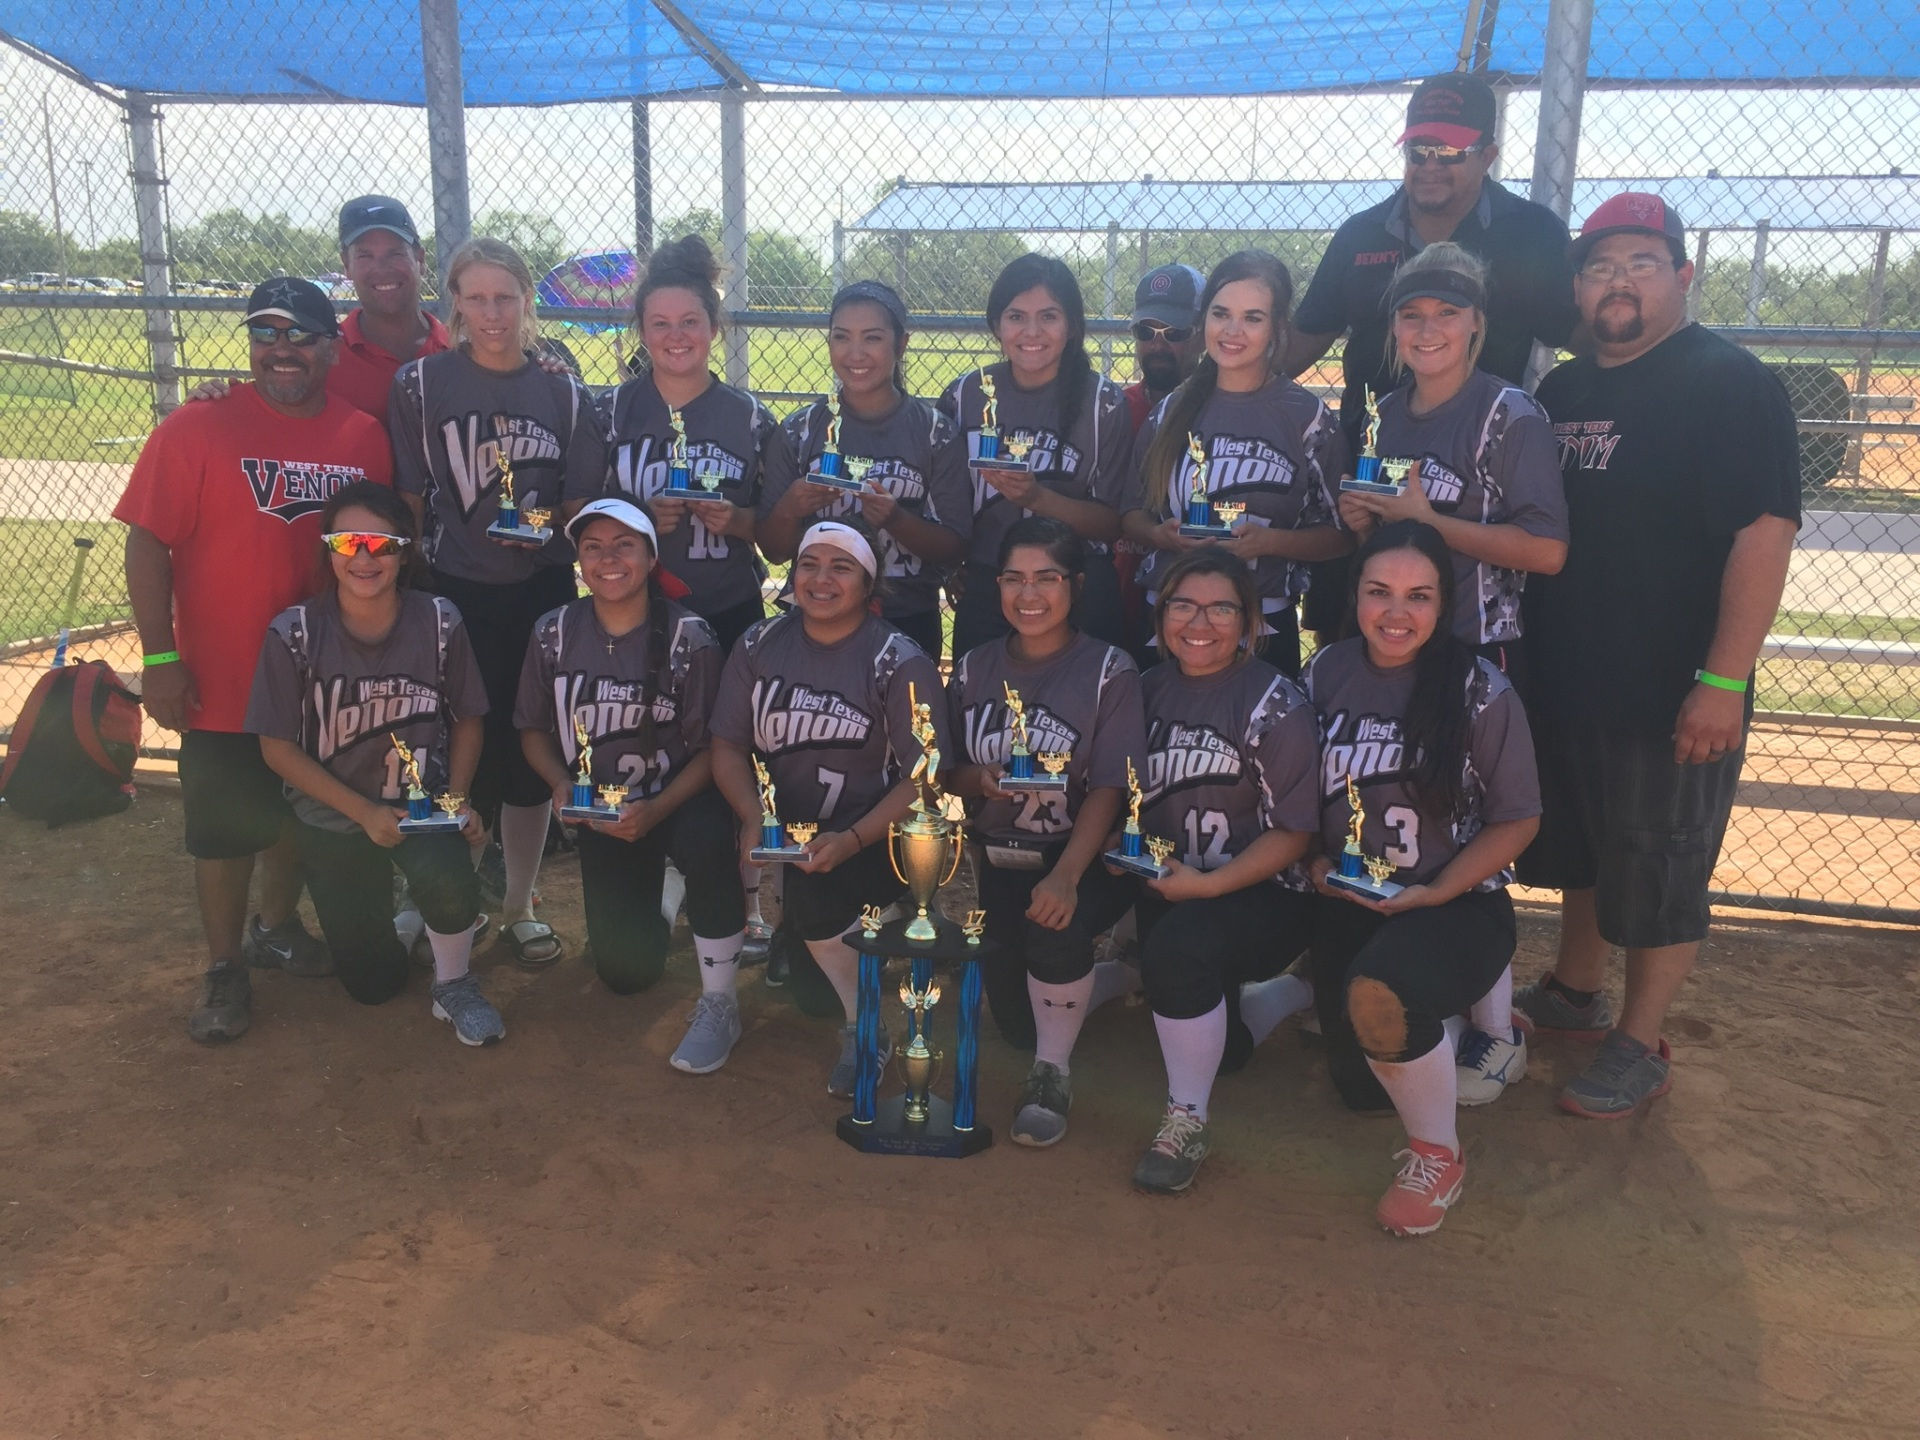 West Texas Venom 2nd Place 18U